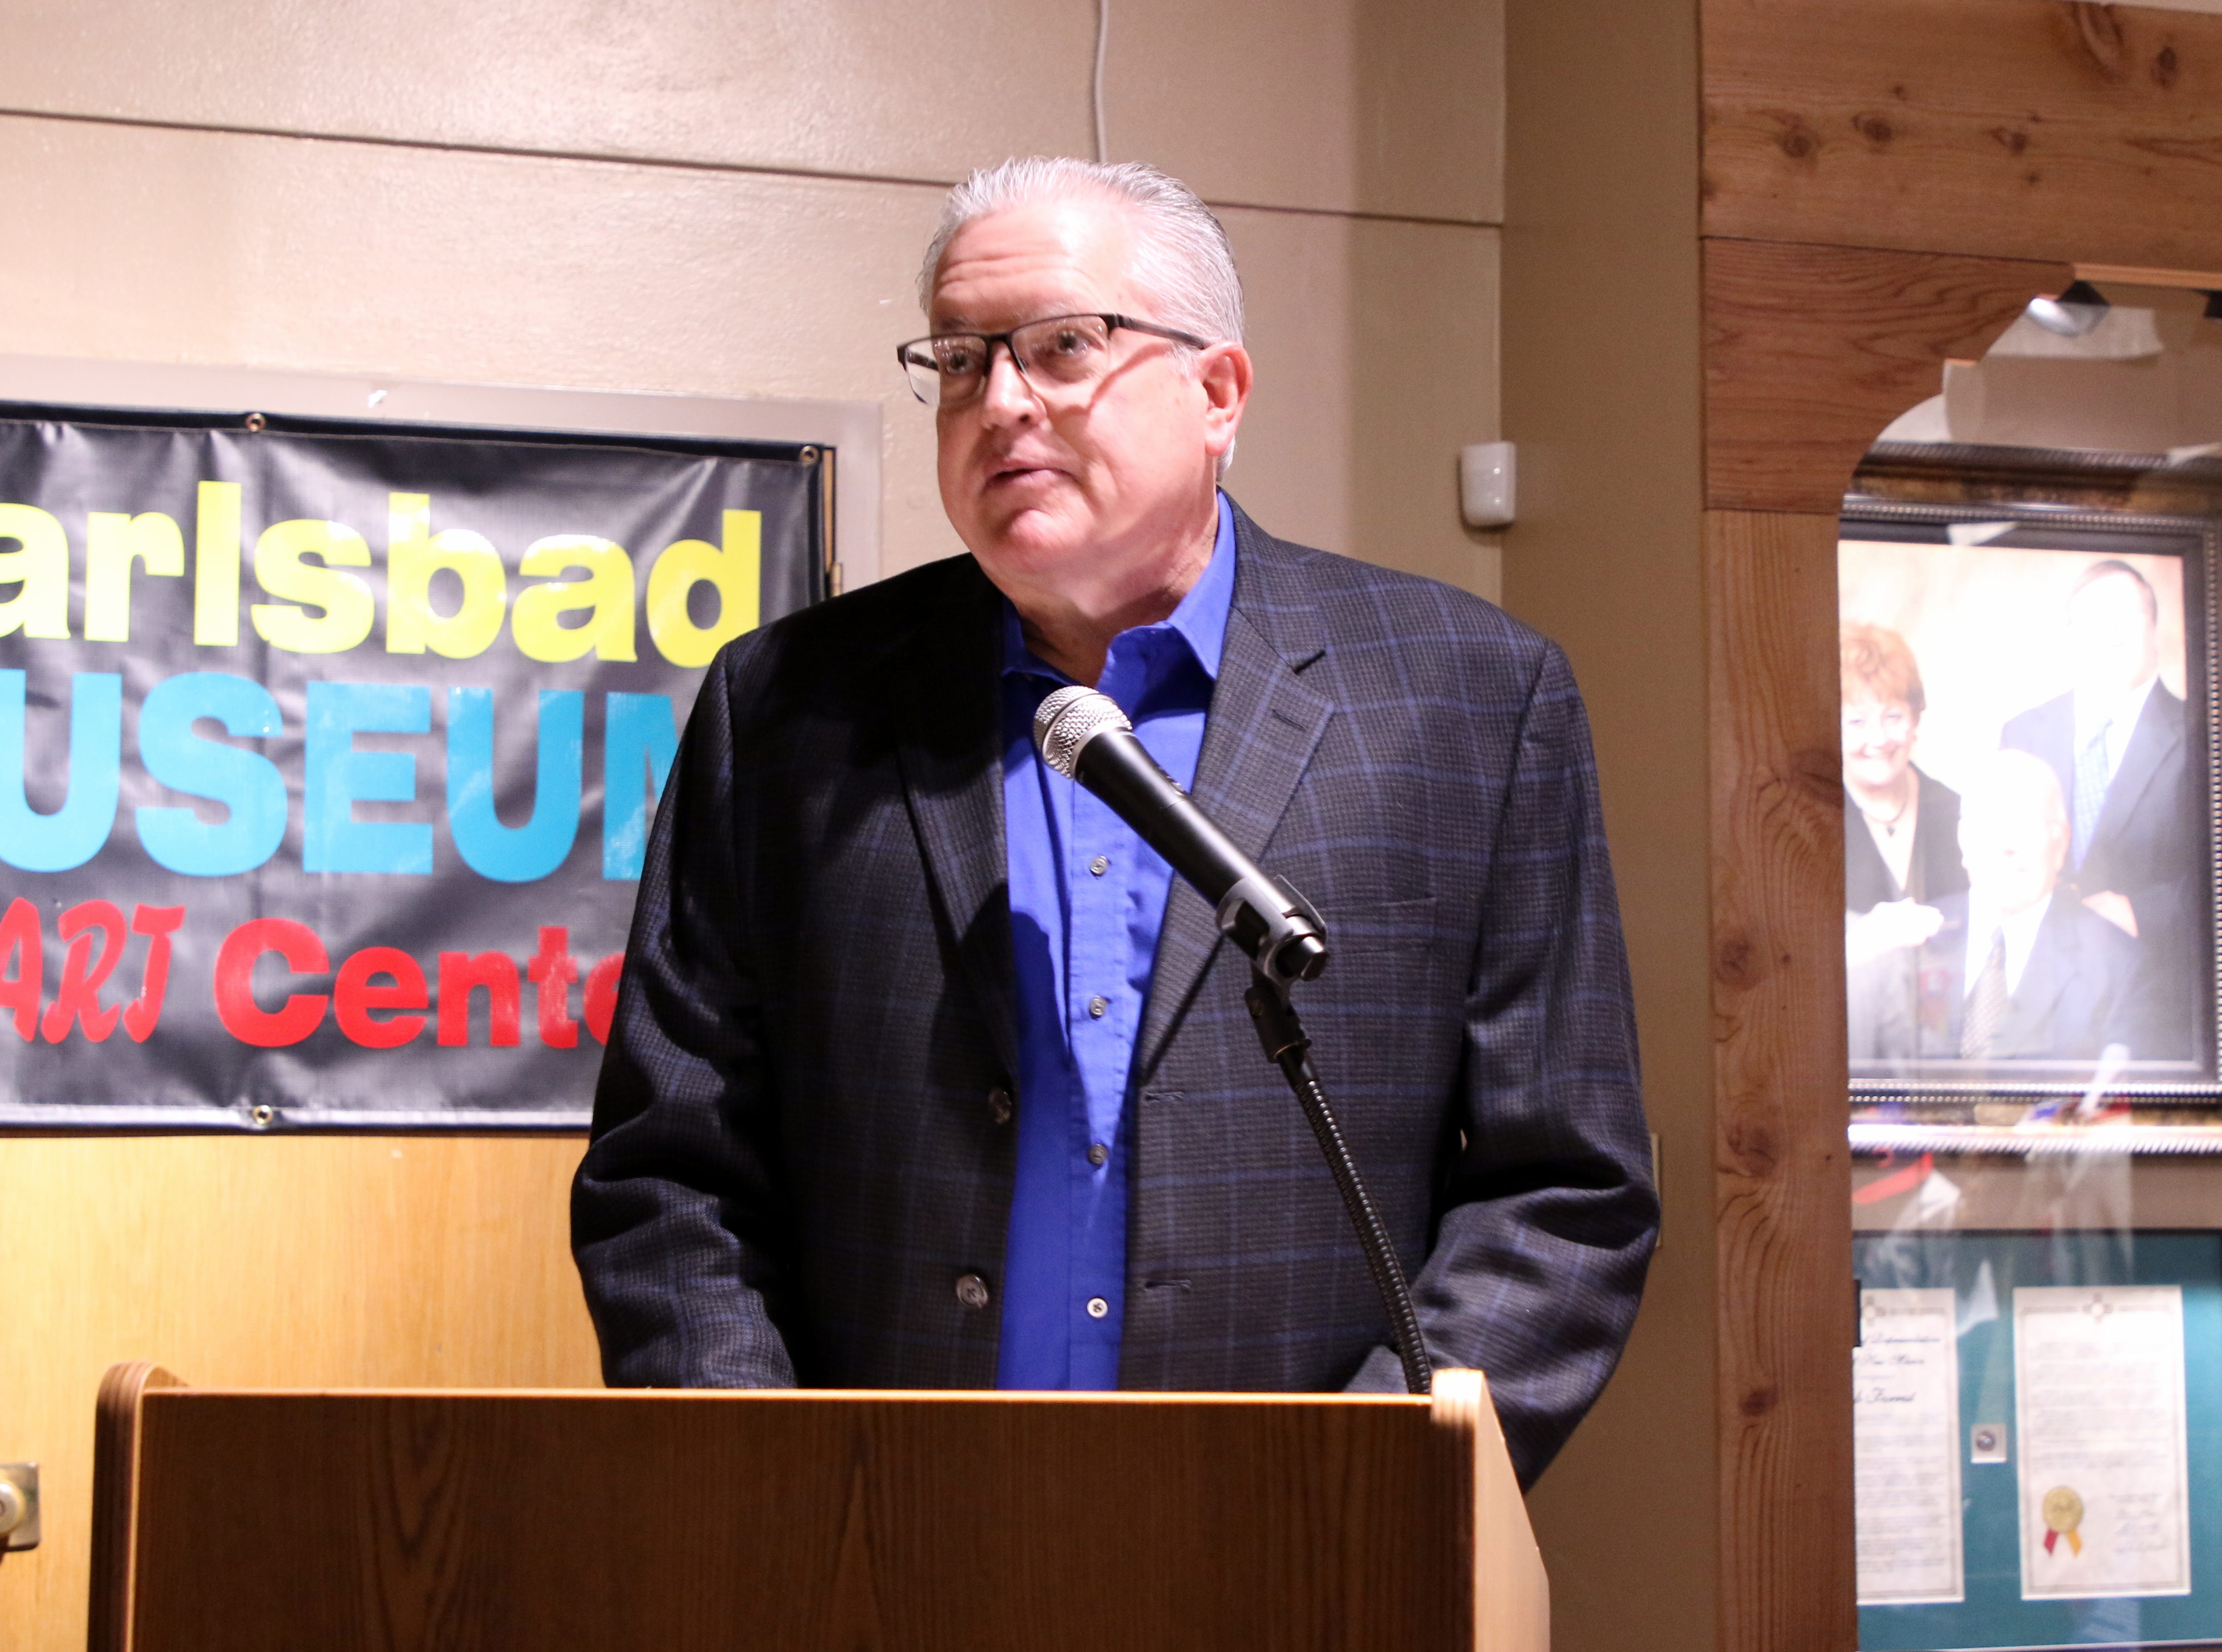 Reverend Dan Boyd gives the invocation during Friday's Carlsbad Hall of Fame Induction.